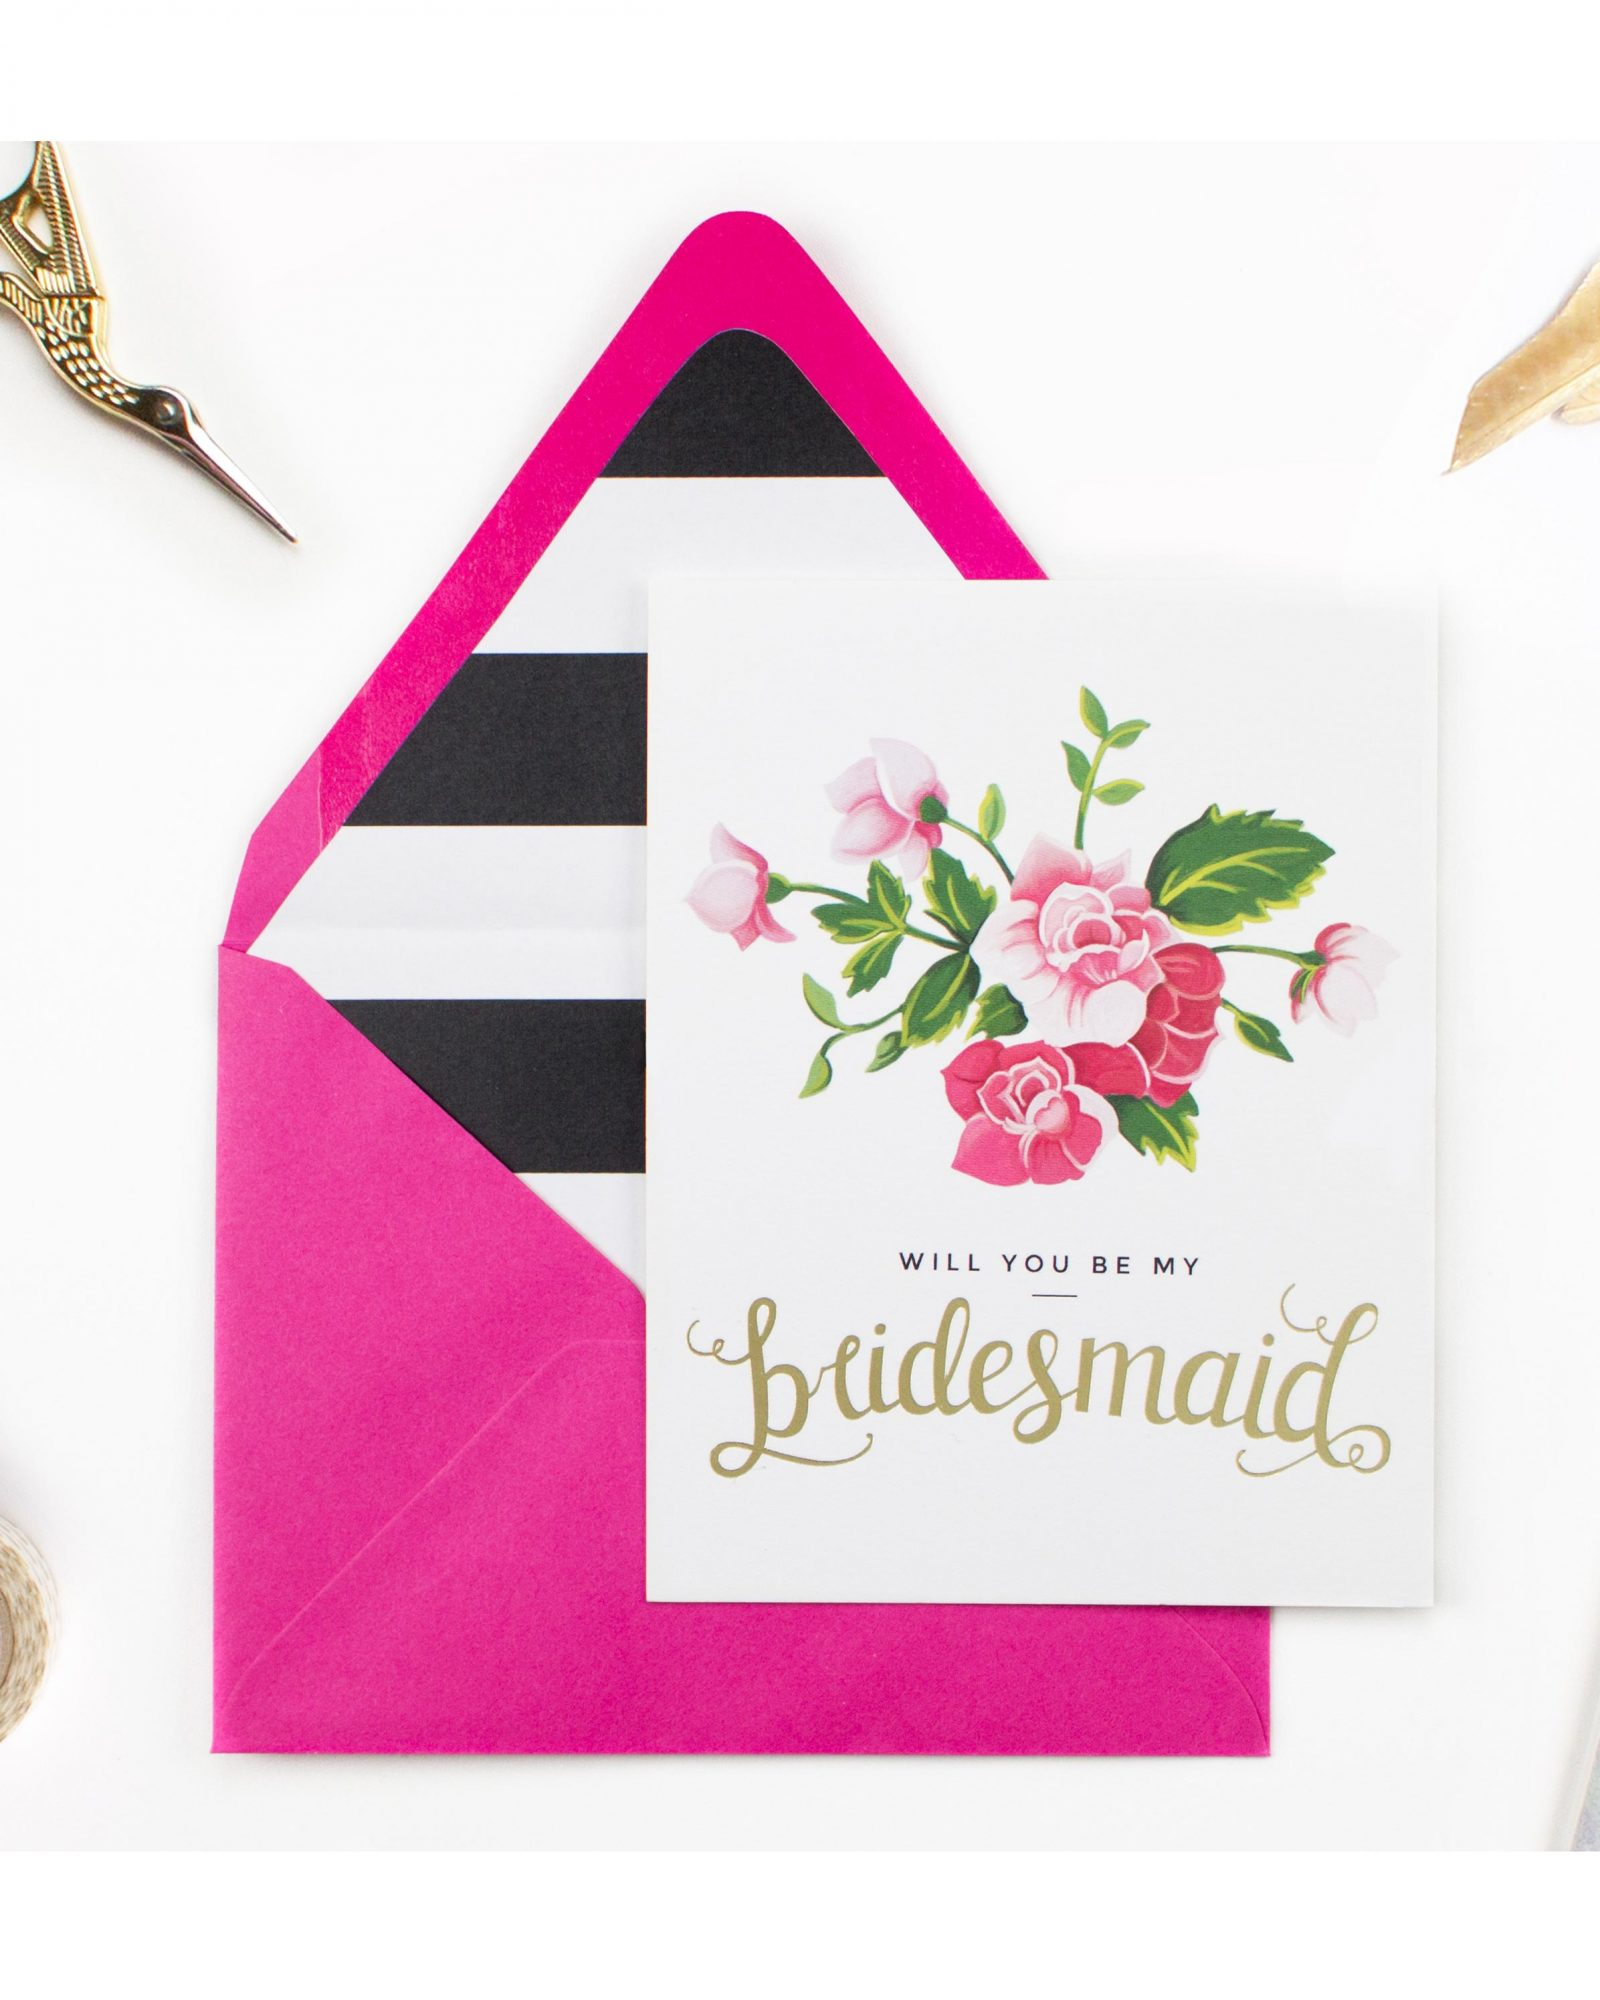 archer-and-olive-will-you-be-my-bridesmaid-card-0216.jpg